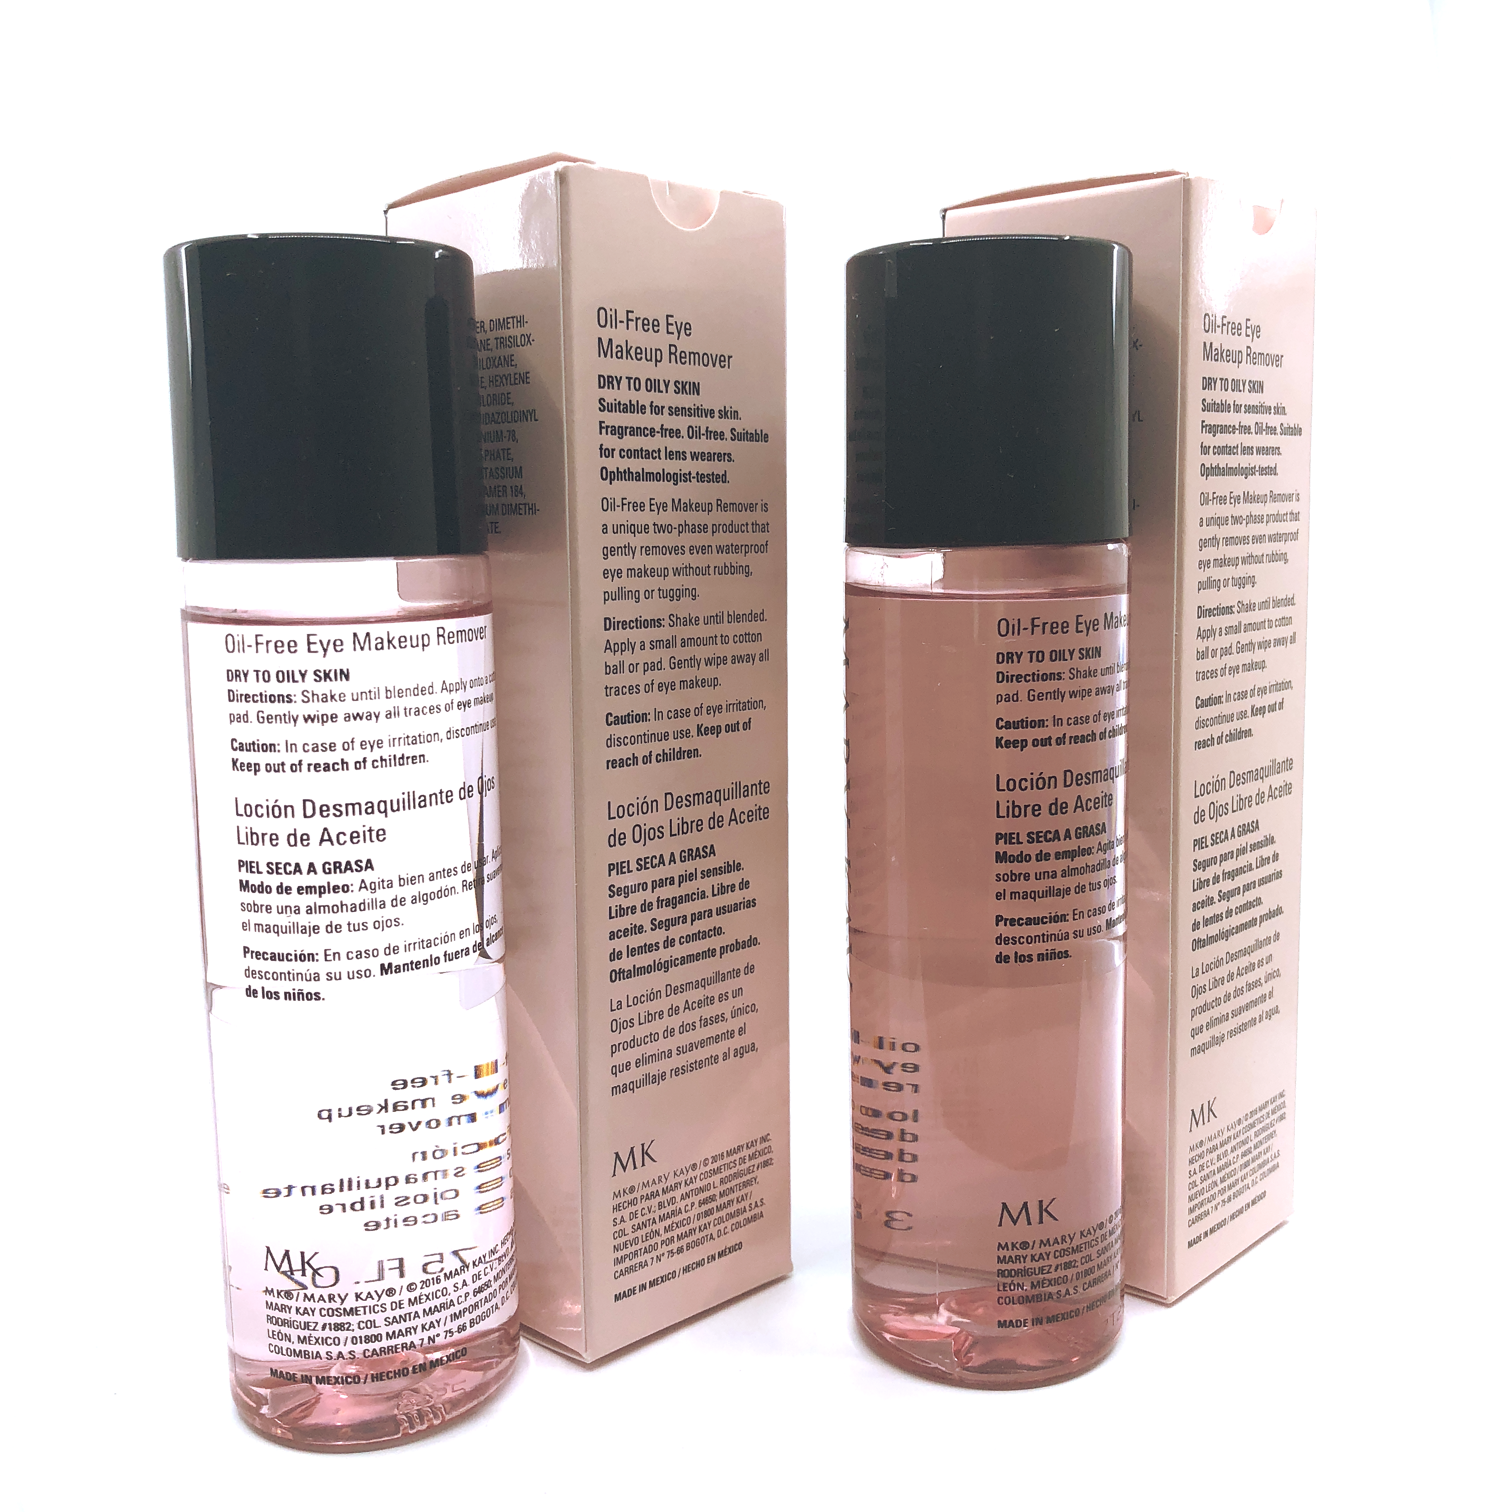 Mary Kay Oil-Free Eye Makeup Remover- 3.75 fl. oz. (2 PACK) FREE SHIPPING 4